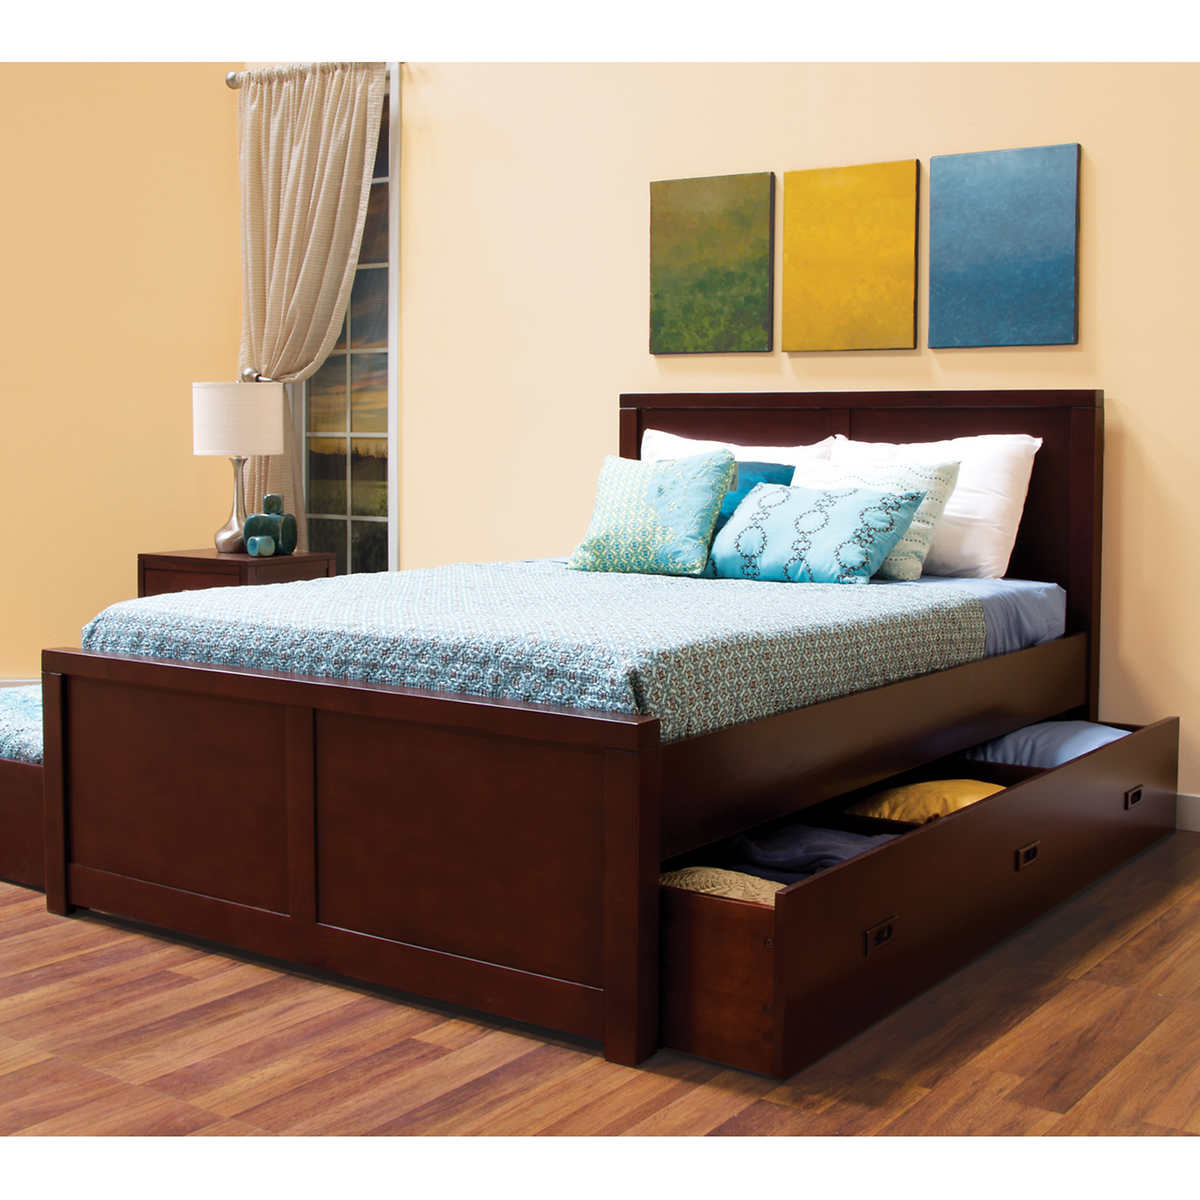 Full Bed Size.Peyton Full Bed With Trundle And Storage